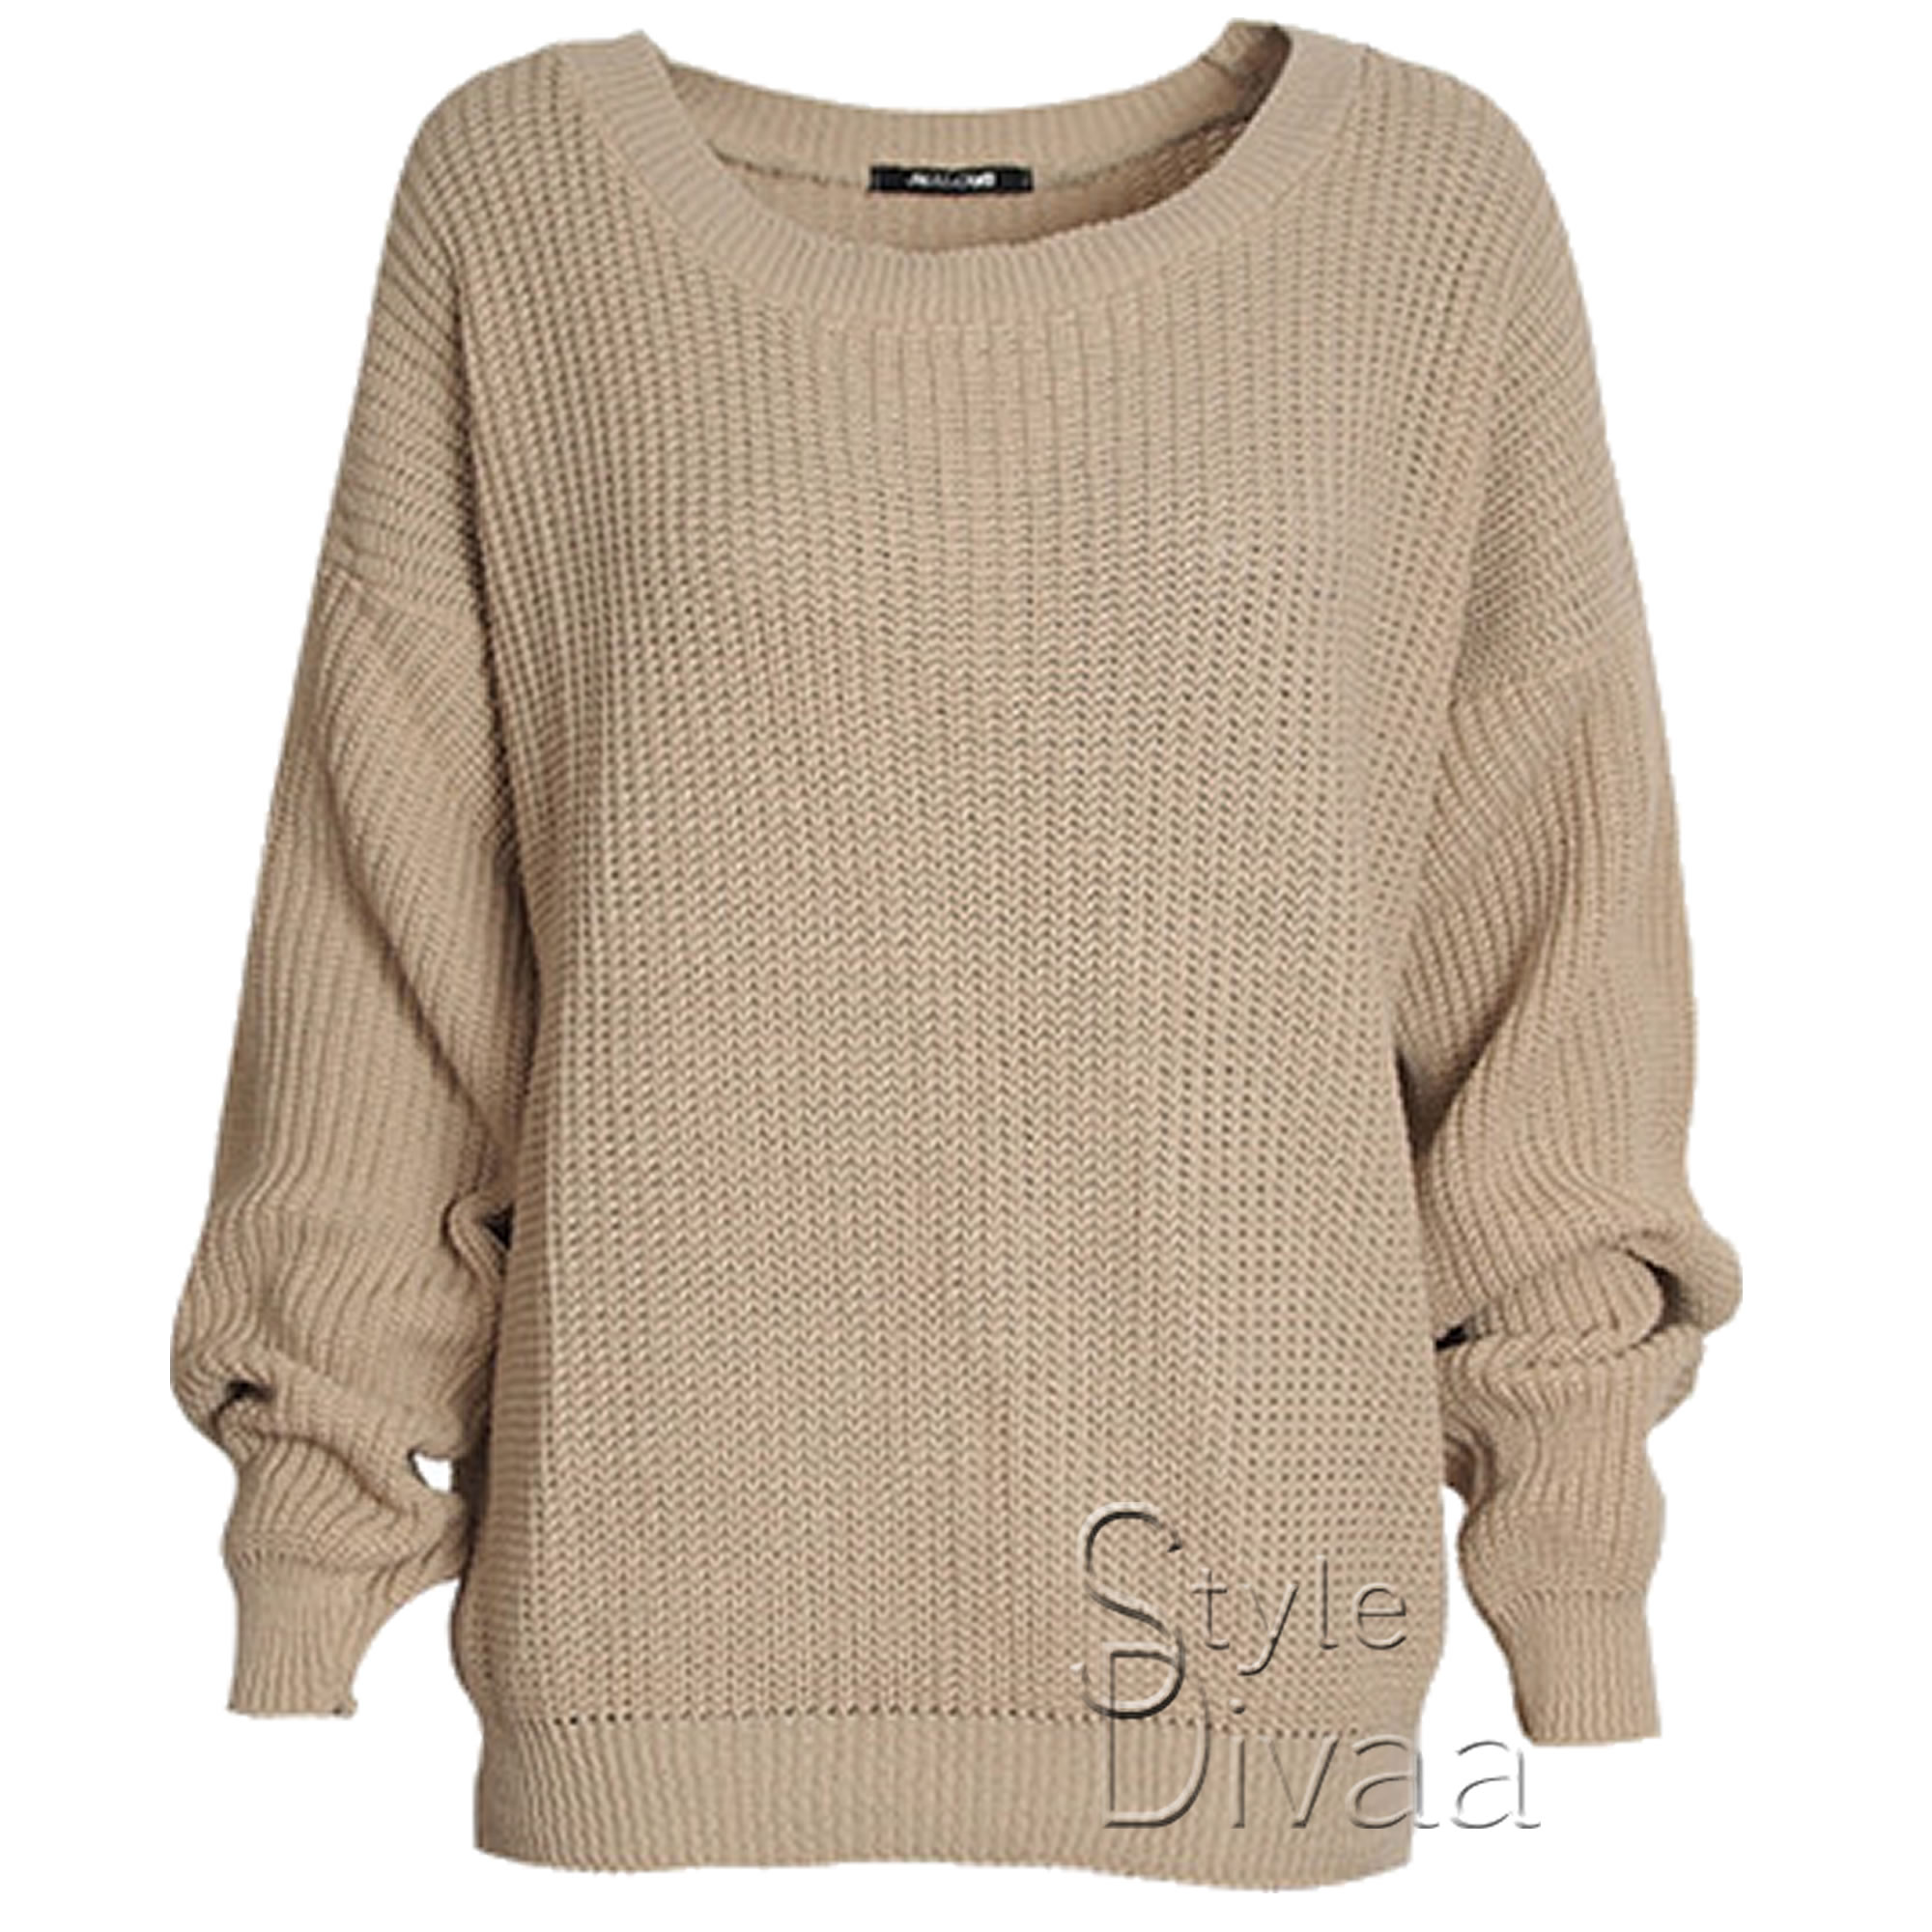 Ladies Oversized Baggy Jumper Knitted Womens Sweater Chunky Knit Top Jumpers | eBay